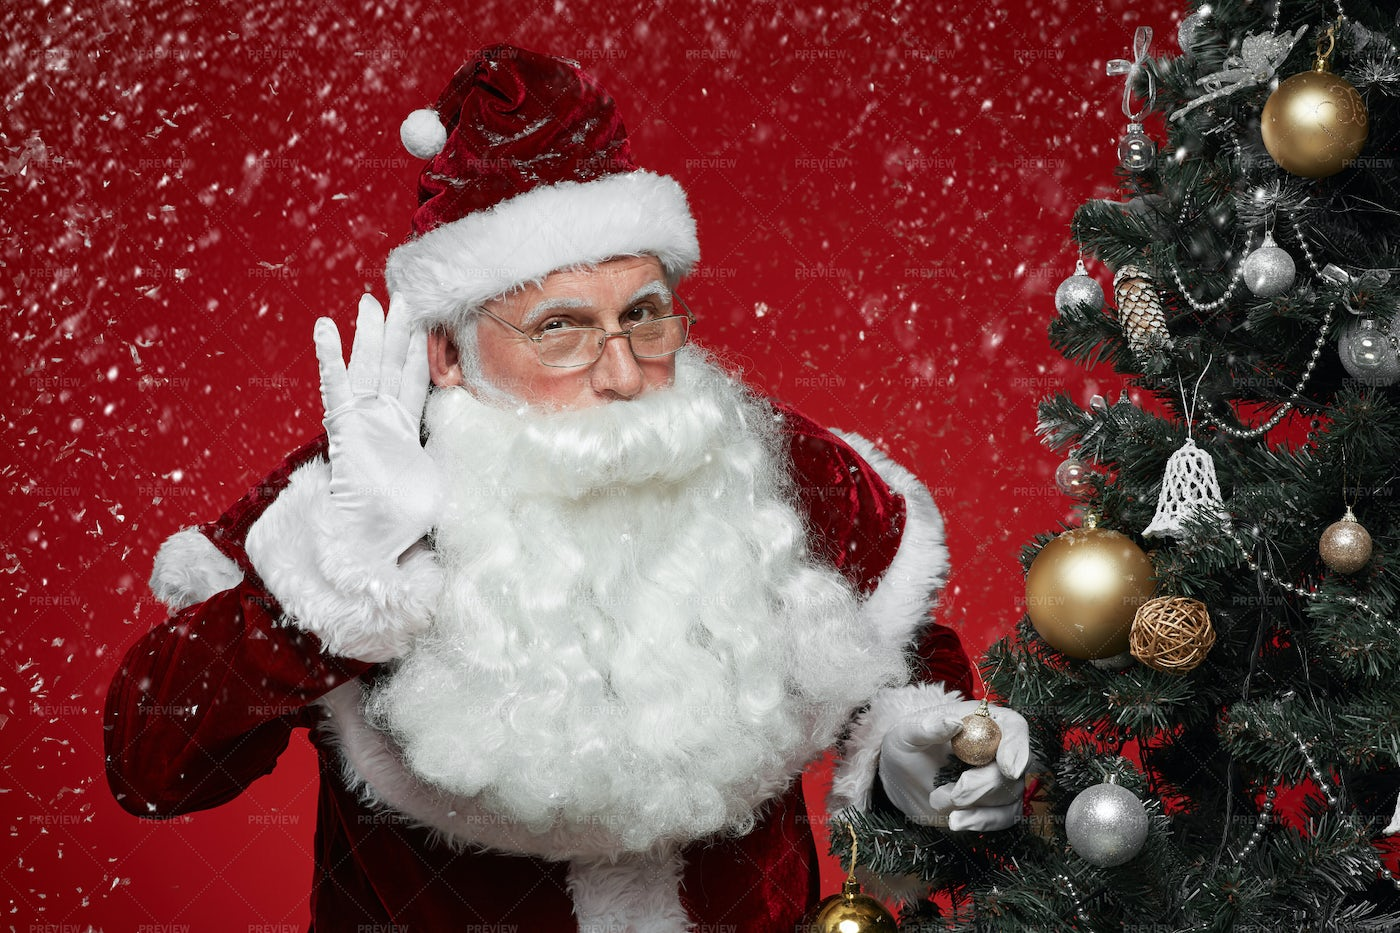 Christmas Is Coming: Stock Photos